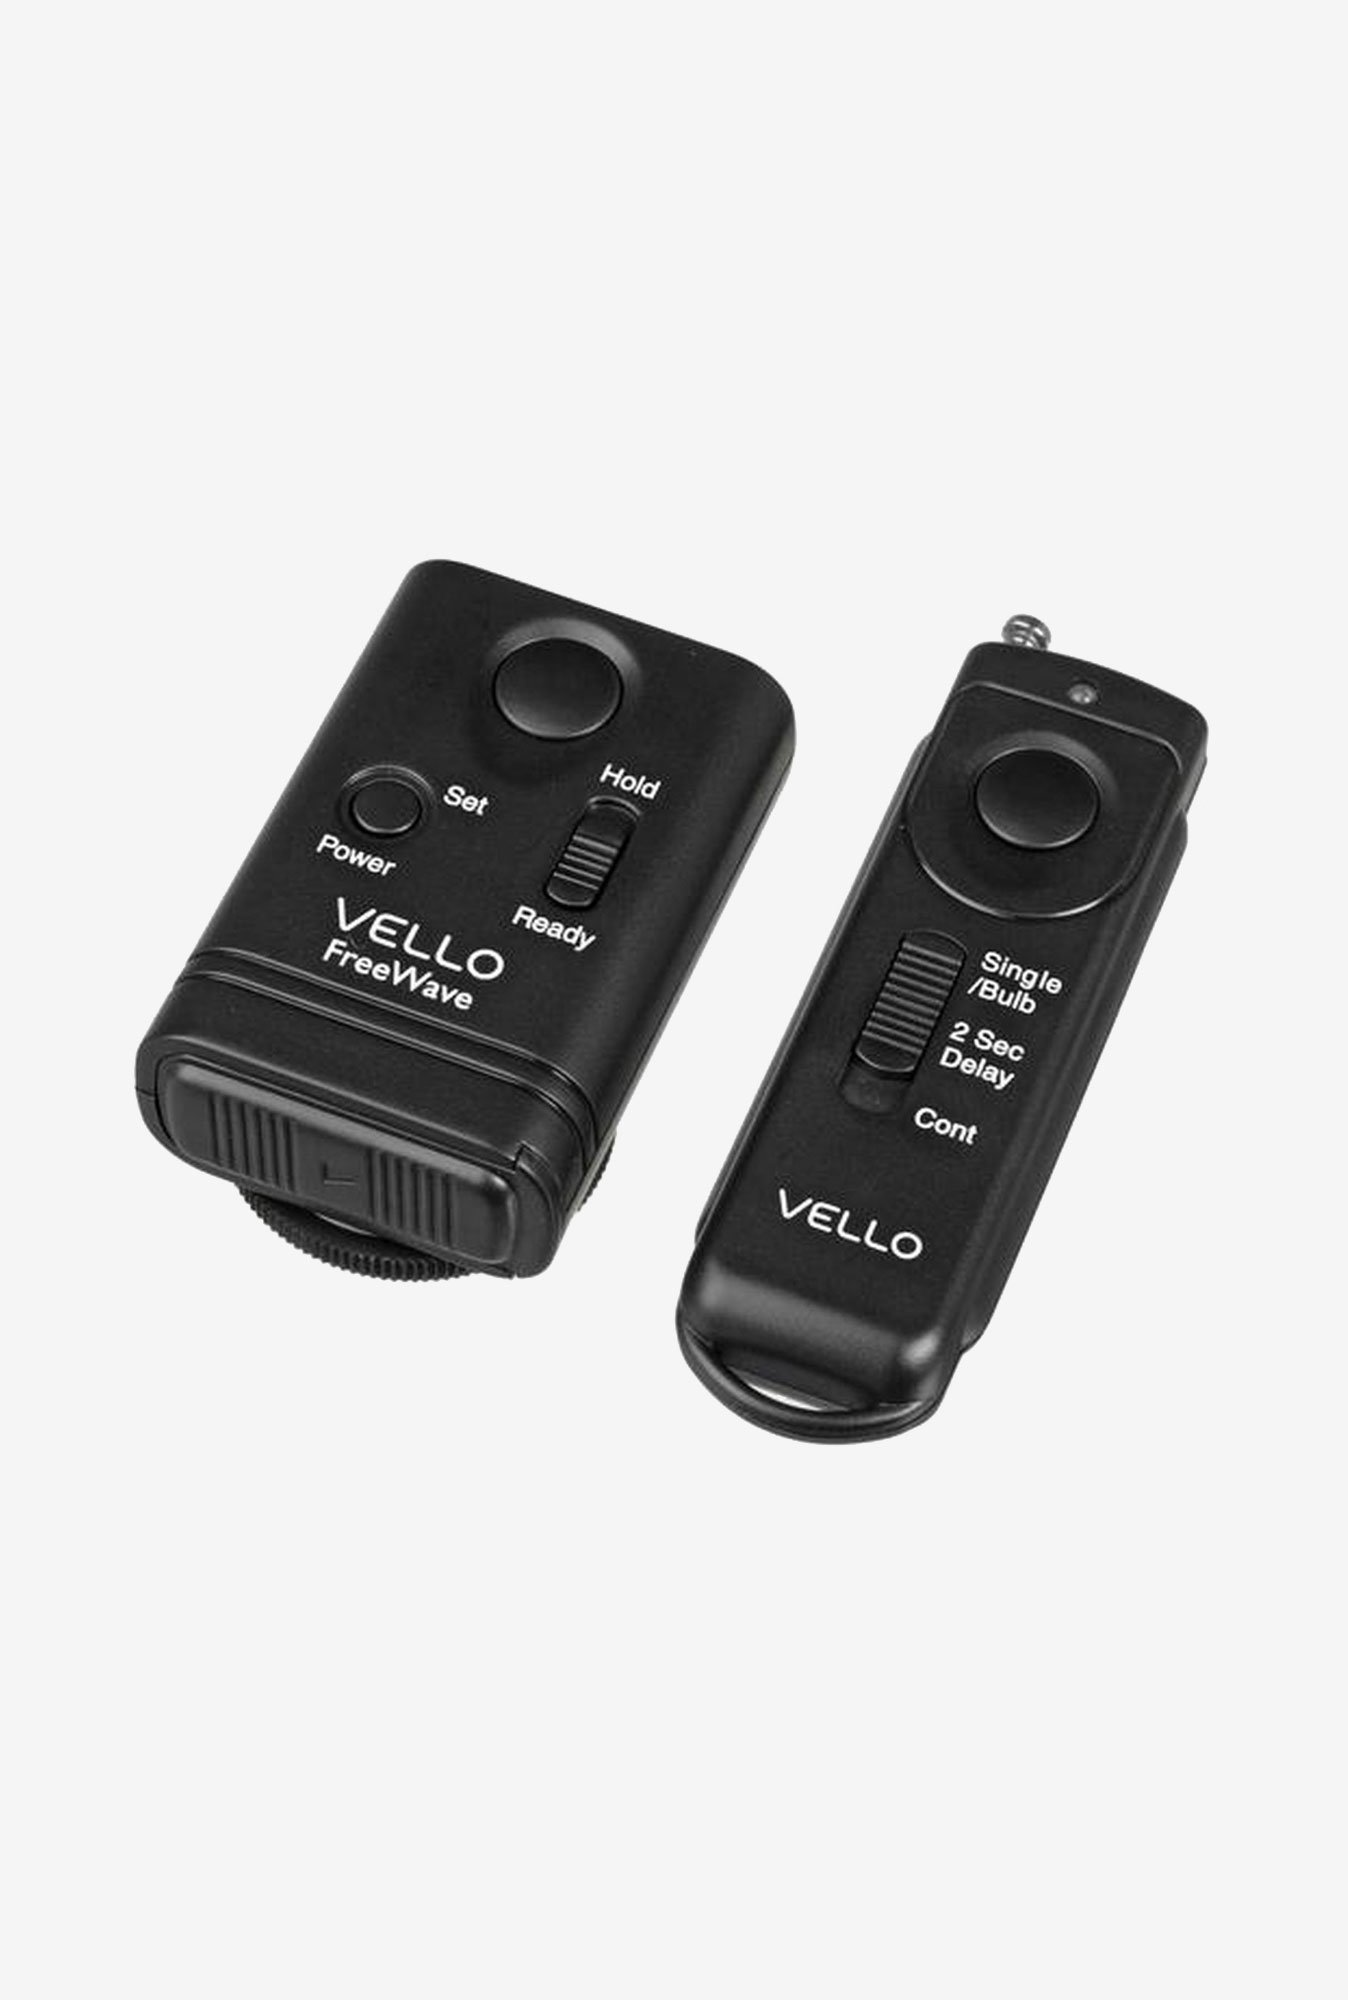 Vello RW-C2 FreeWave Wireless Remote Shutter Release (Black)